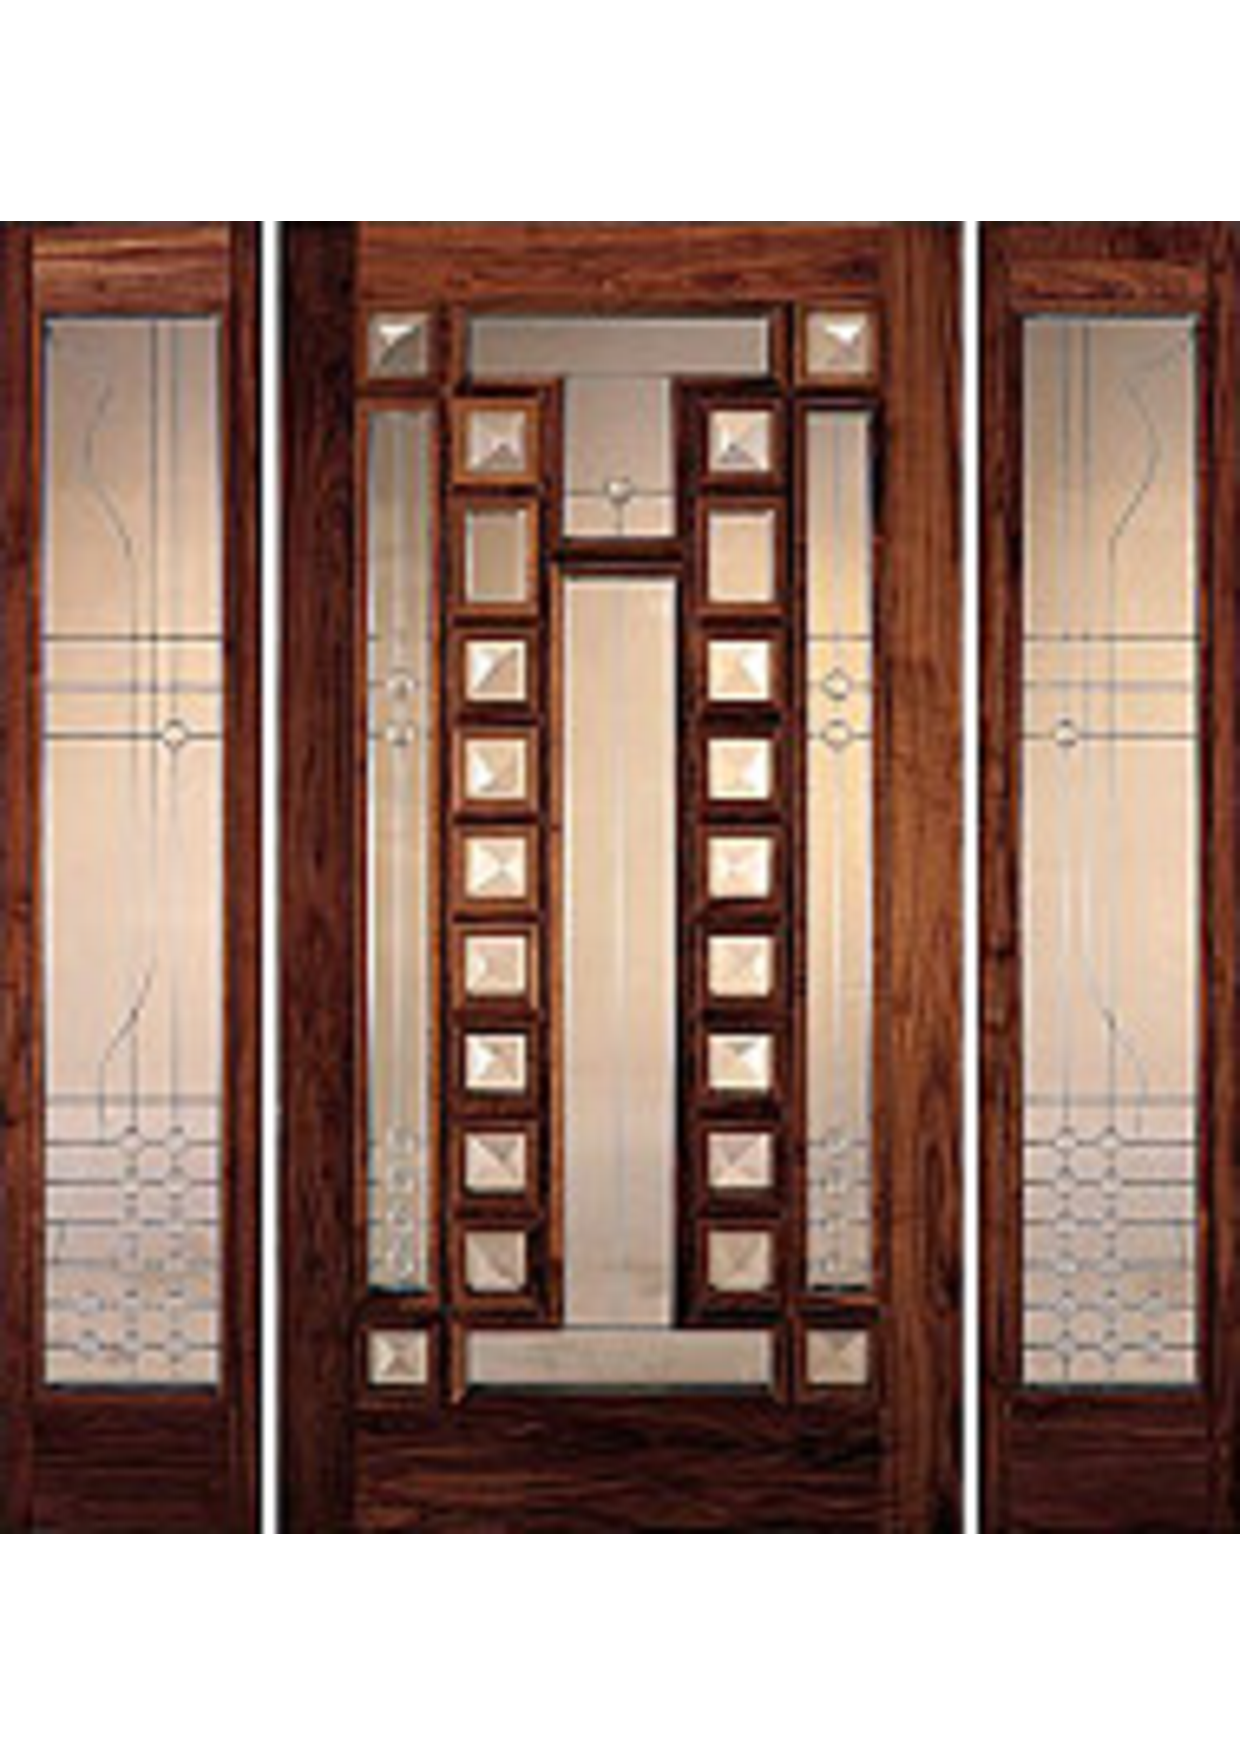 Living room door designs in india nakicphotography for Door design india